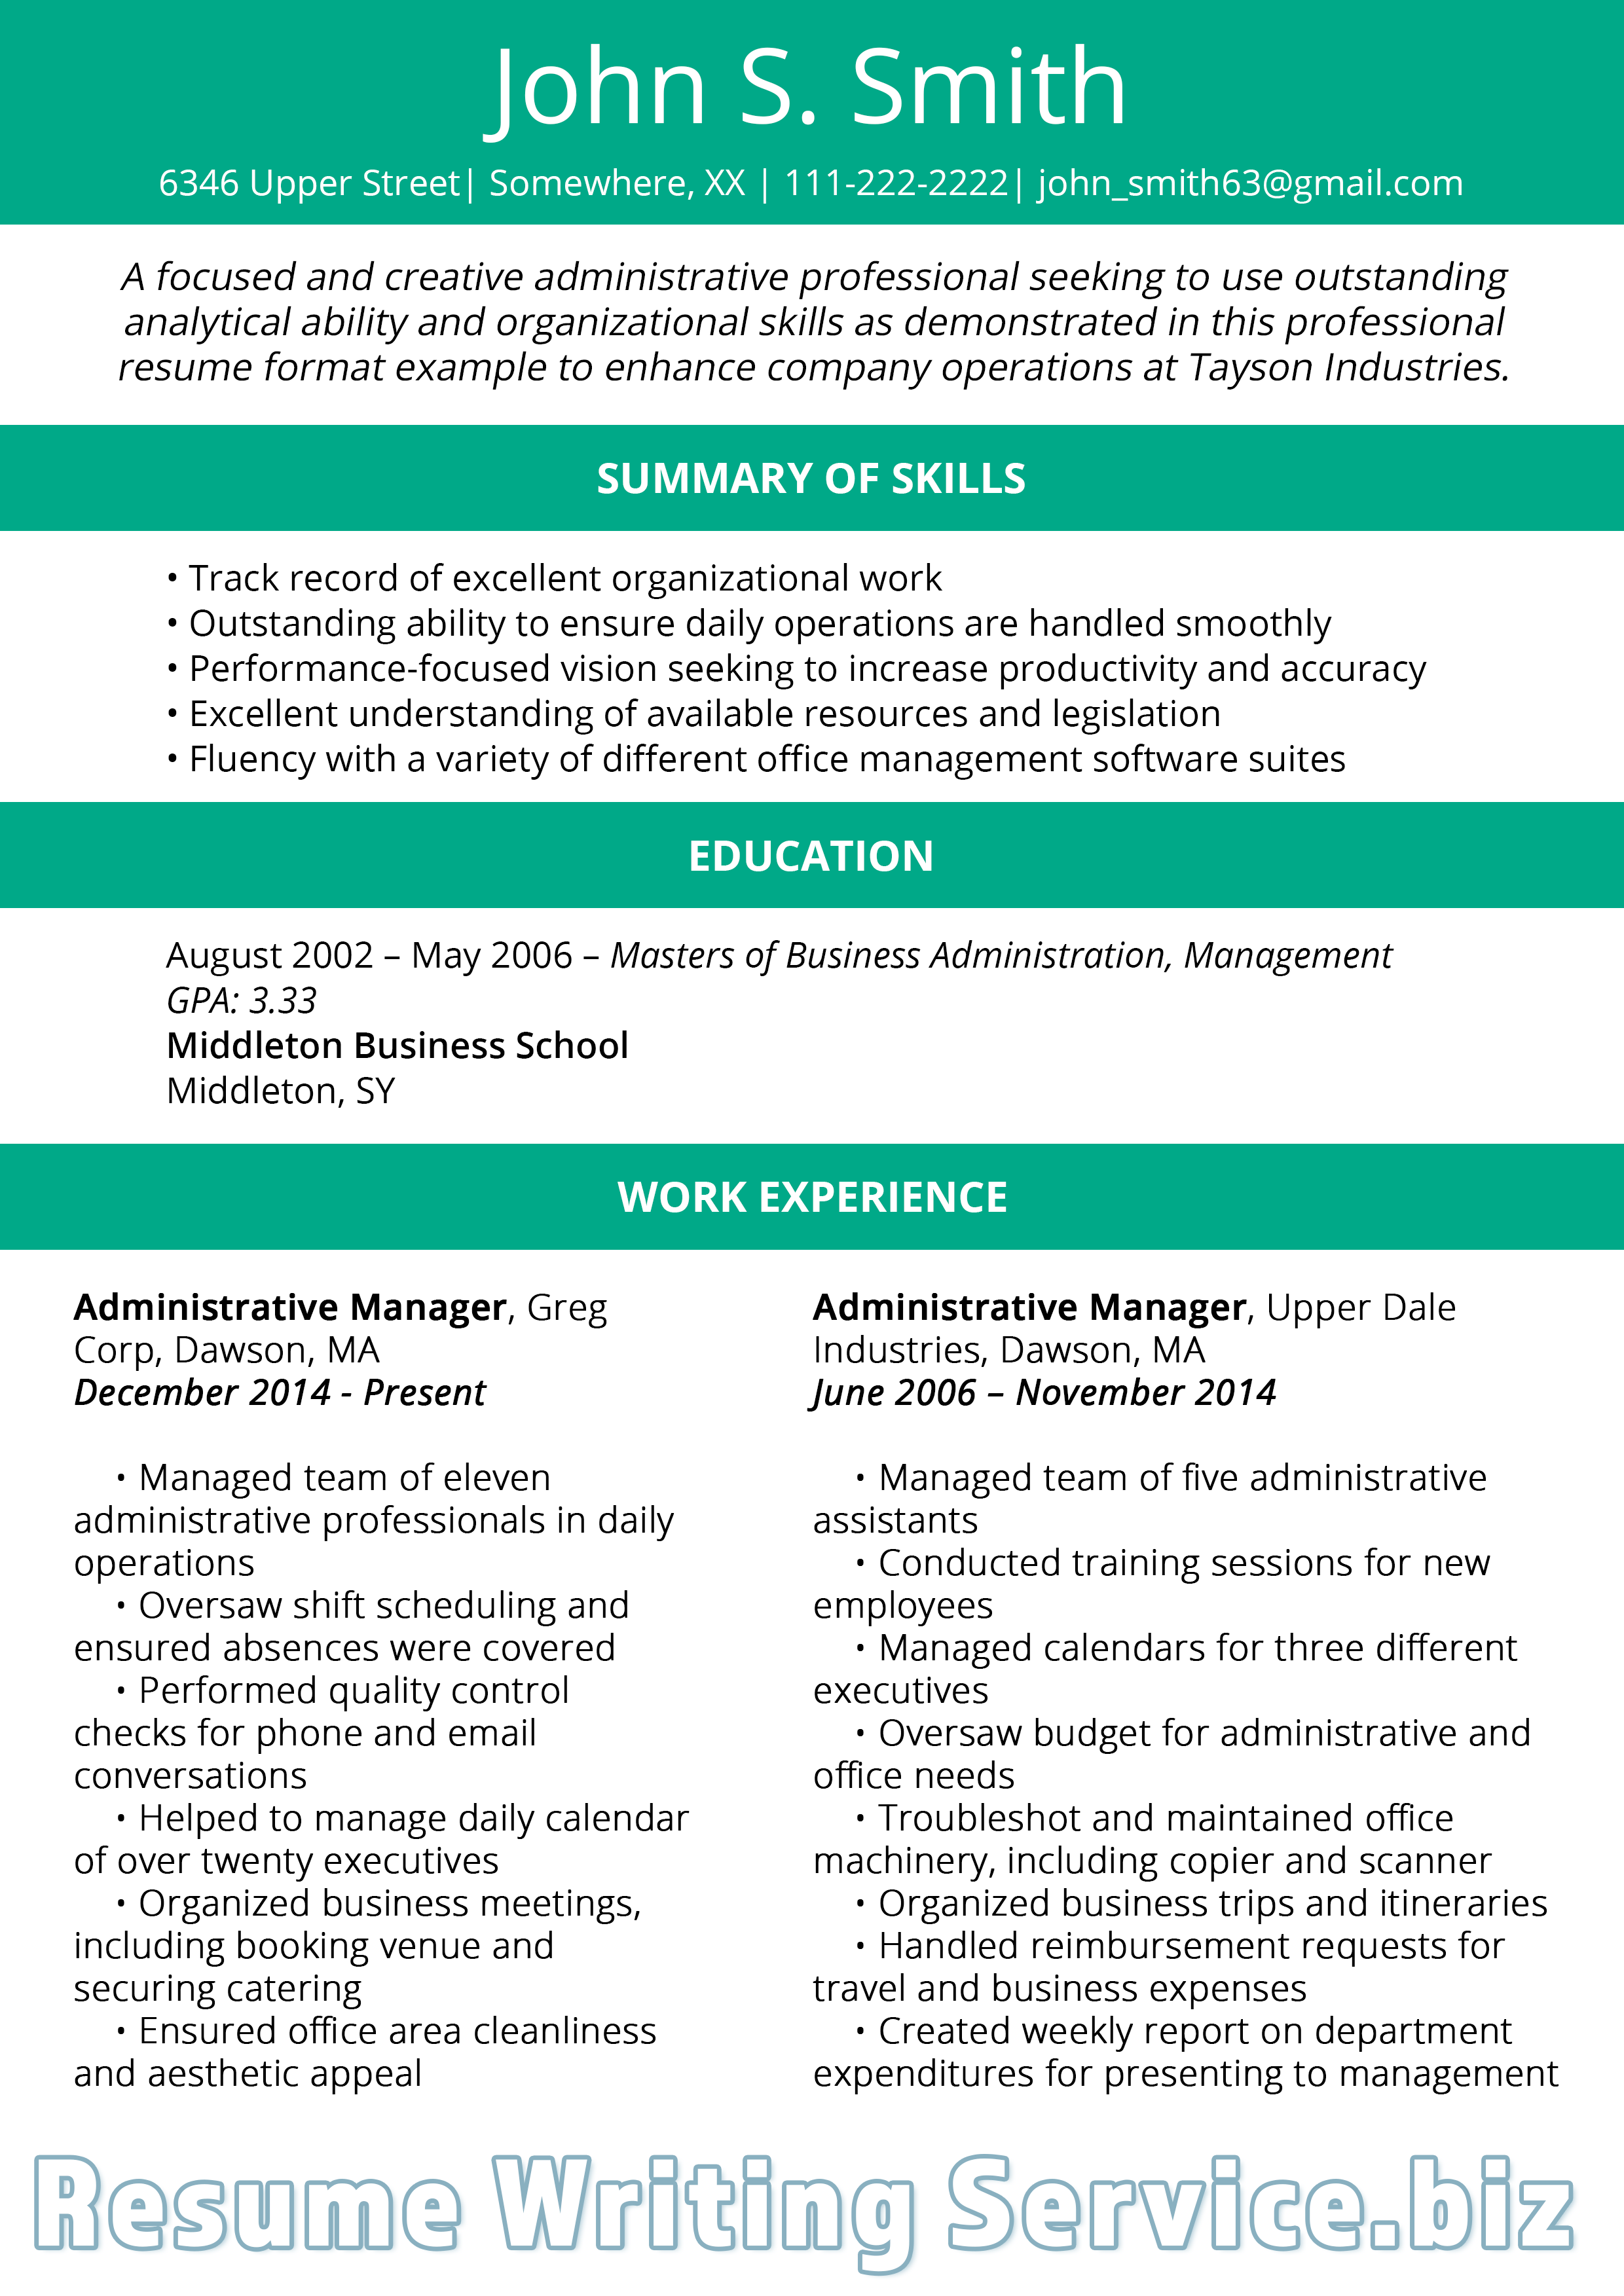 Best Resume Format 2019 Latest Trends To Use Best Resume Format Professional Resume Format Resume Format